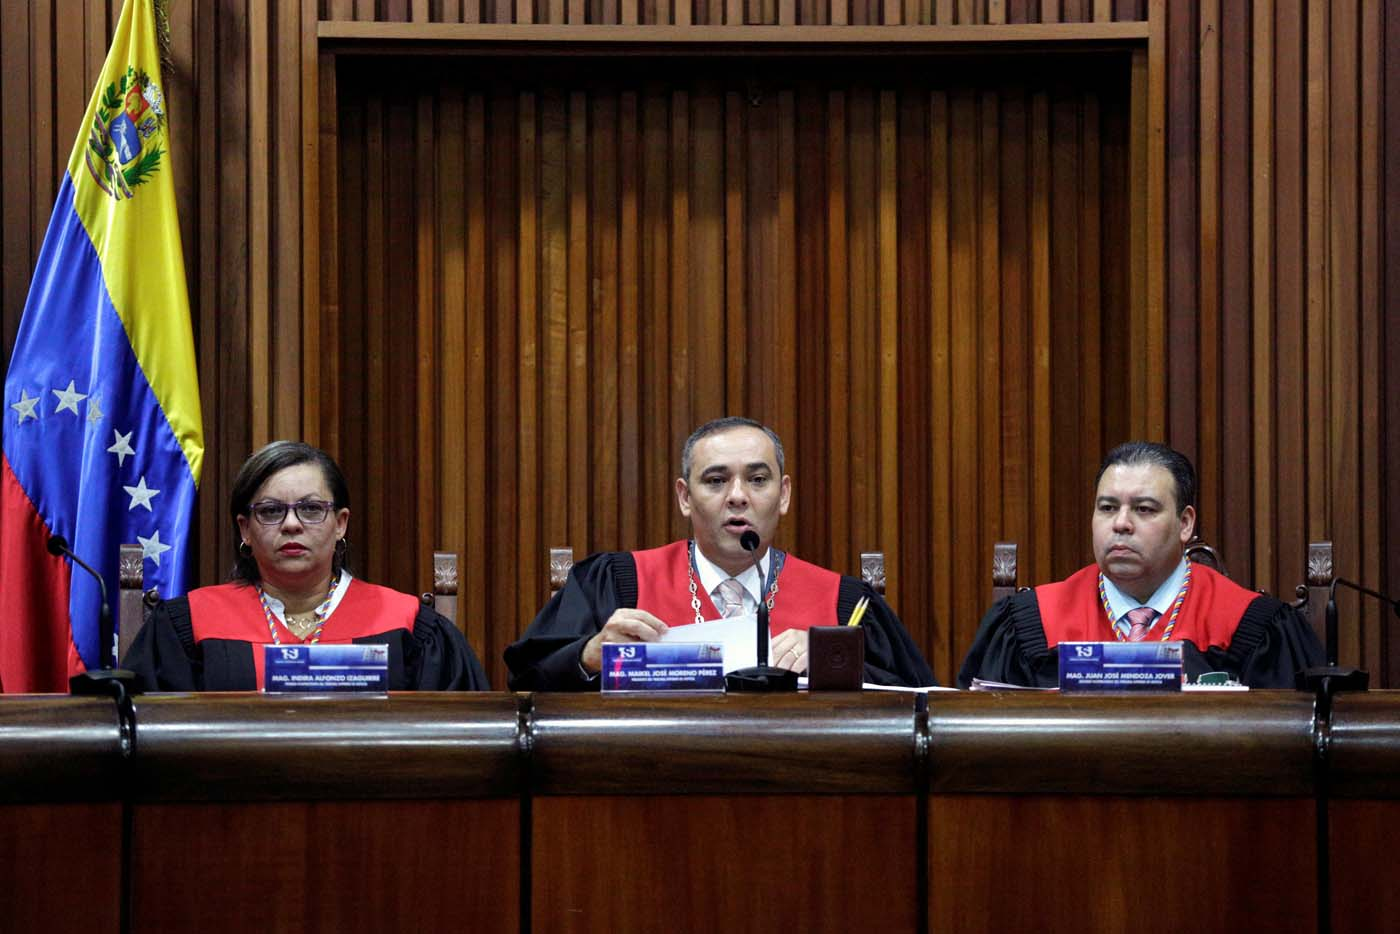 Venezuela's Supreme Court President Maikel Moreno (C) talks to the media during a news conference, next to Venezuela's Supreme Court First Vice President Indira Alfonzo (L) and Venezuela's Supreme Court Second Vice President Juan Mendoza, in Caracas, Venezuela March 27, 2017. REUTERS/Marco Bello